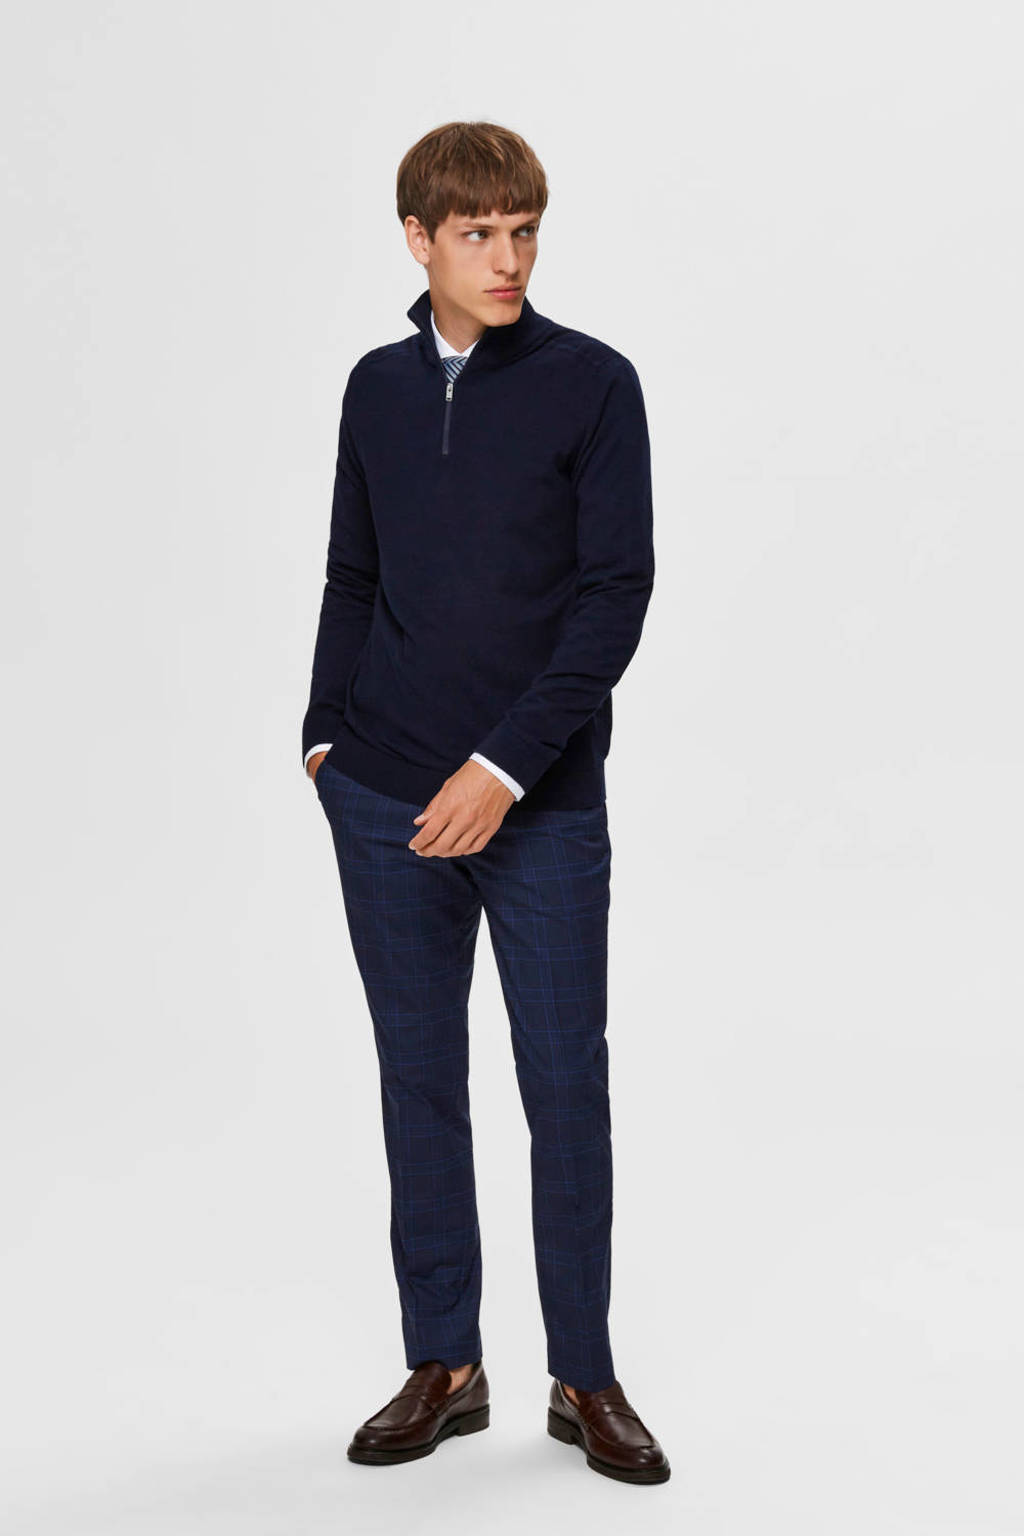 SELECTED HOMME coltrui donkerblauw, Donkerblauw